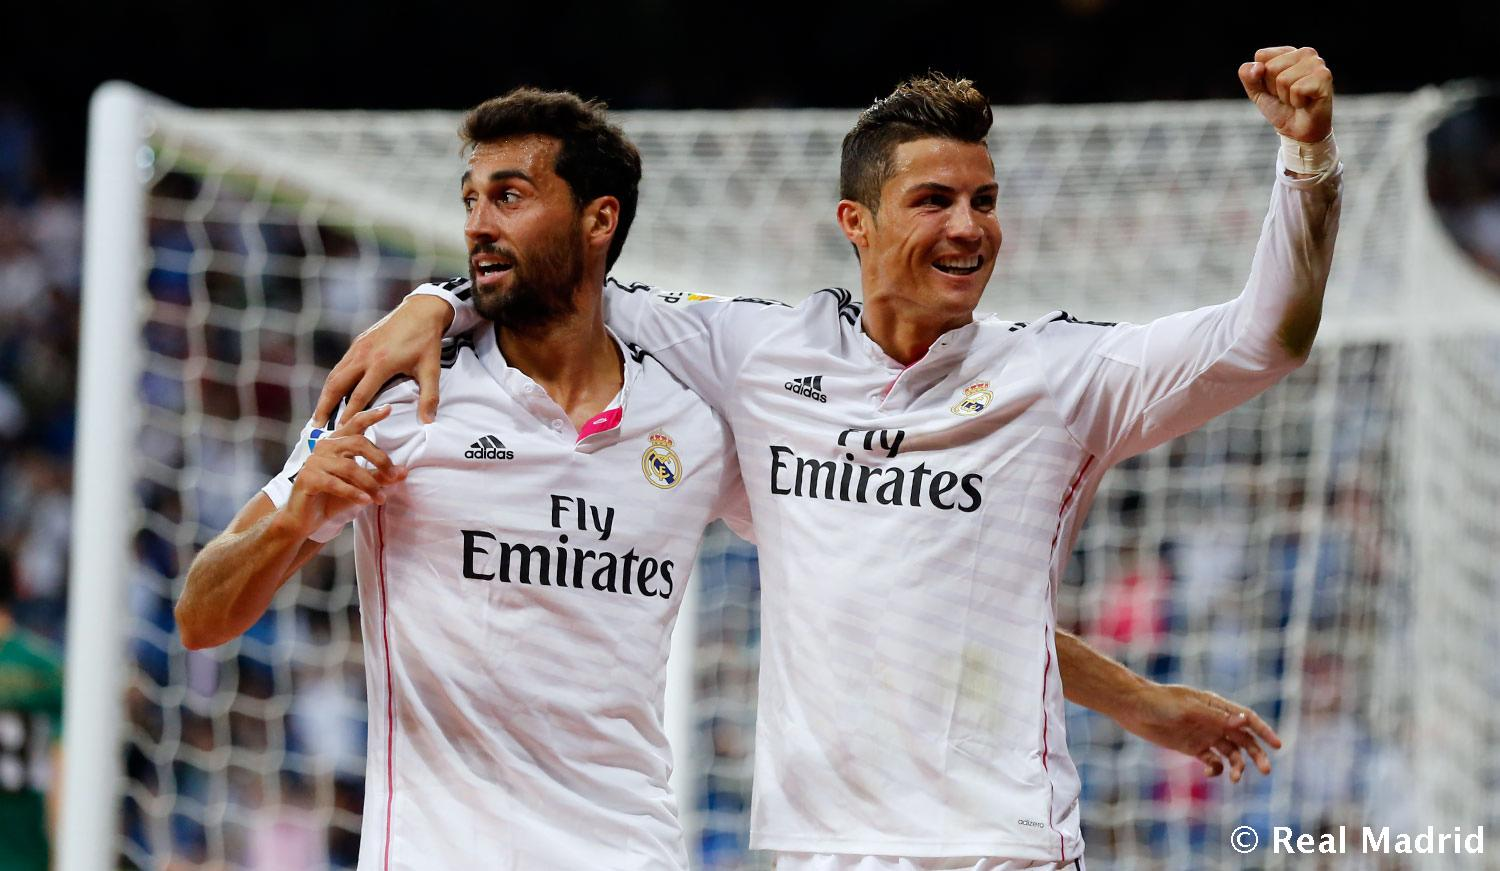 Real Madrid - Real Madrid - Elche - 23-09-2014